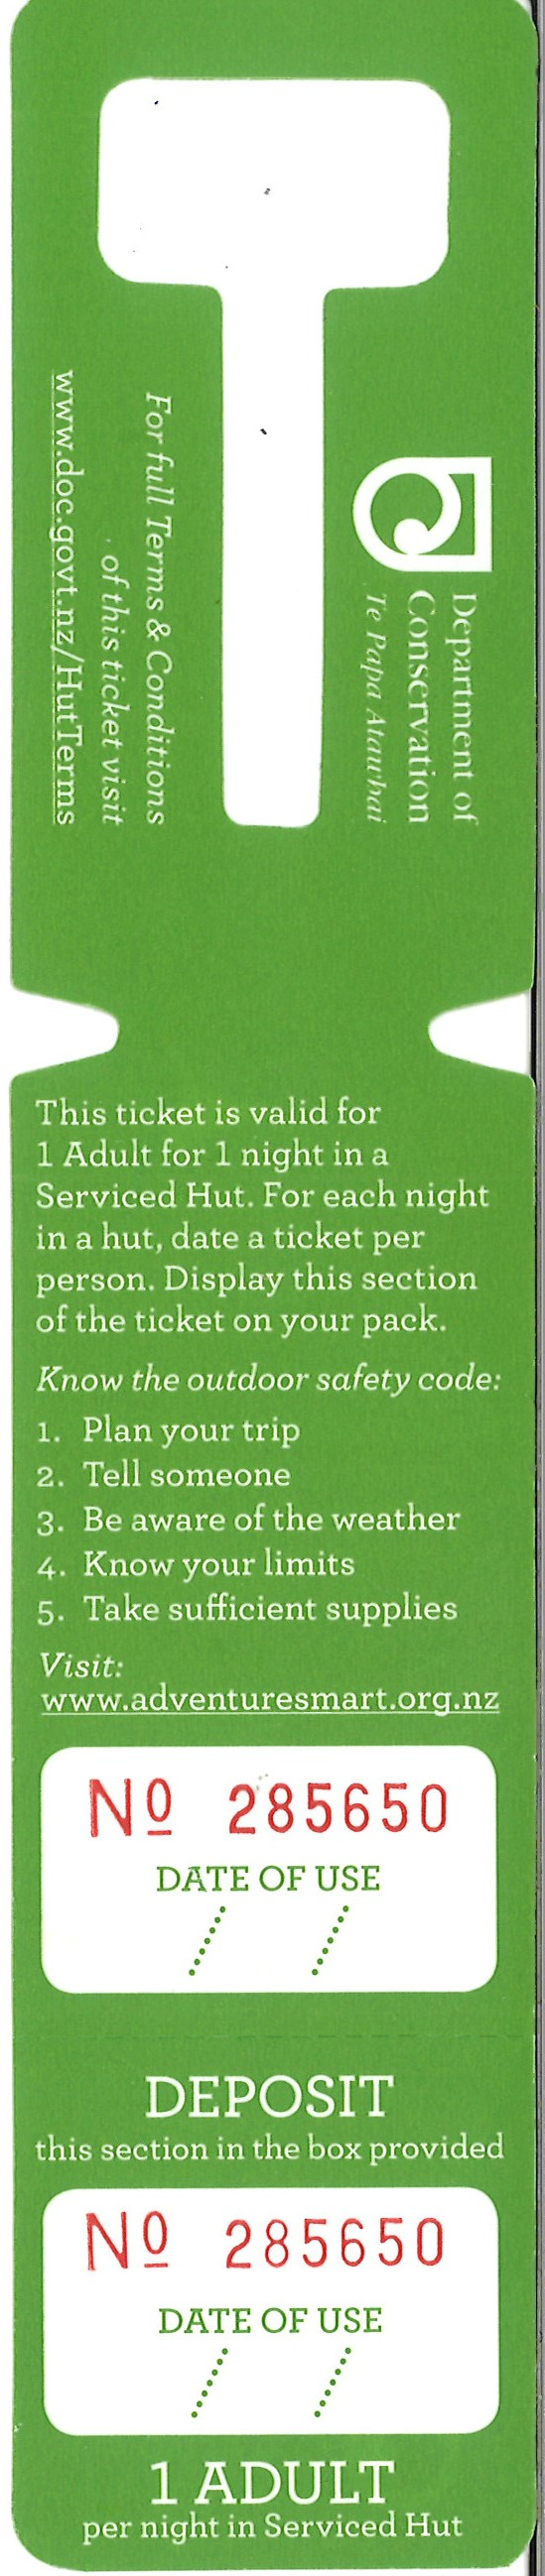 DoC Hut ticket - Serviced Adult